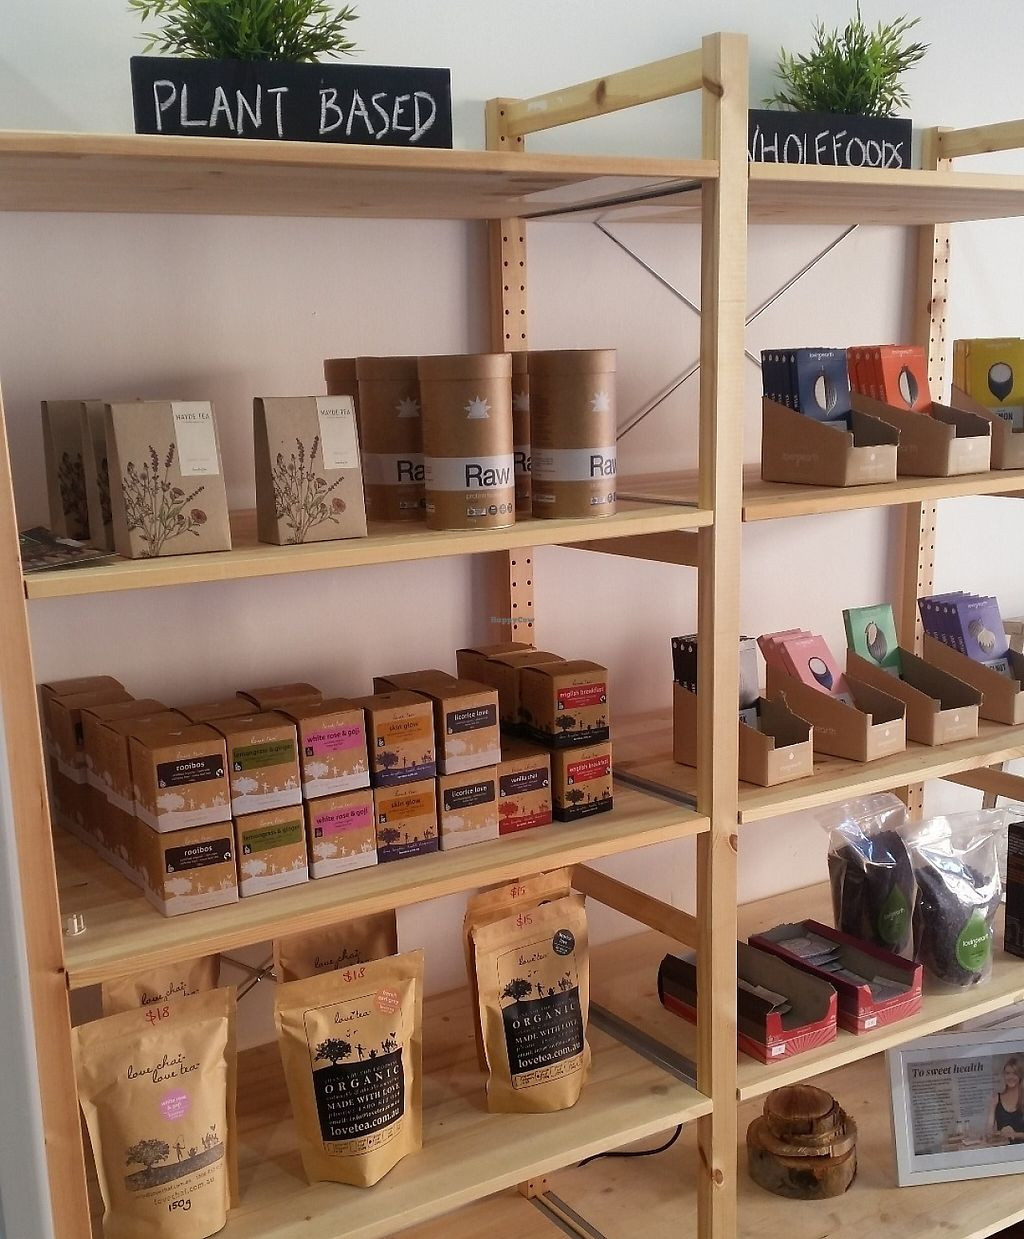 "Photo of RAW  by <a href=""/members/profile/MaddieLucas"">MaddieLucas</a> <br/>Great selection of plant based goodies not only on the menu but also on the shelves to purchase! <br/> July 20, 2016  - <a href='/contact/abuse/image/76769/255656'>Report</a>"